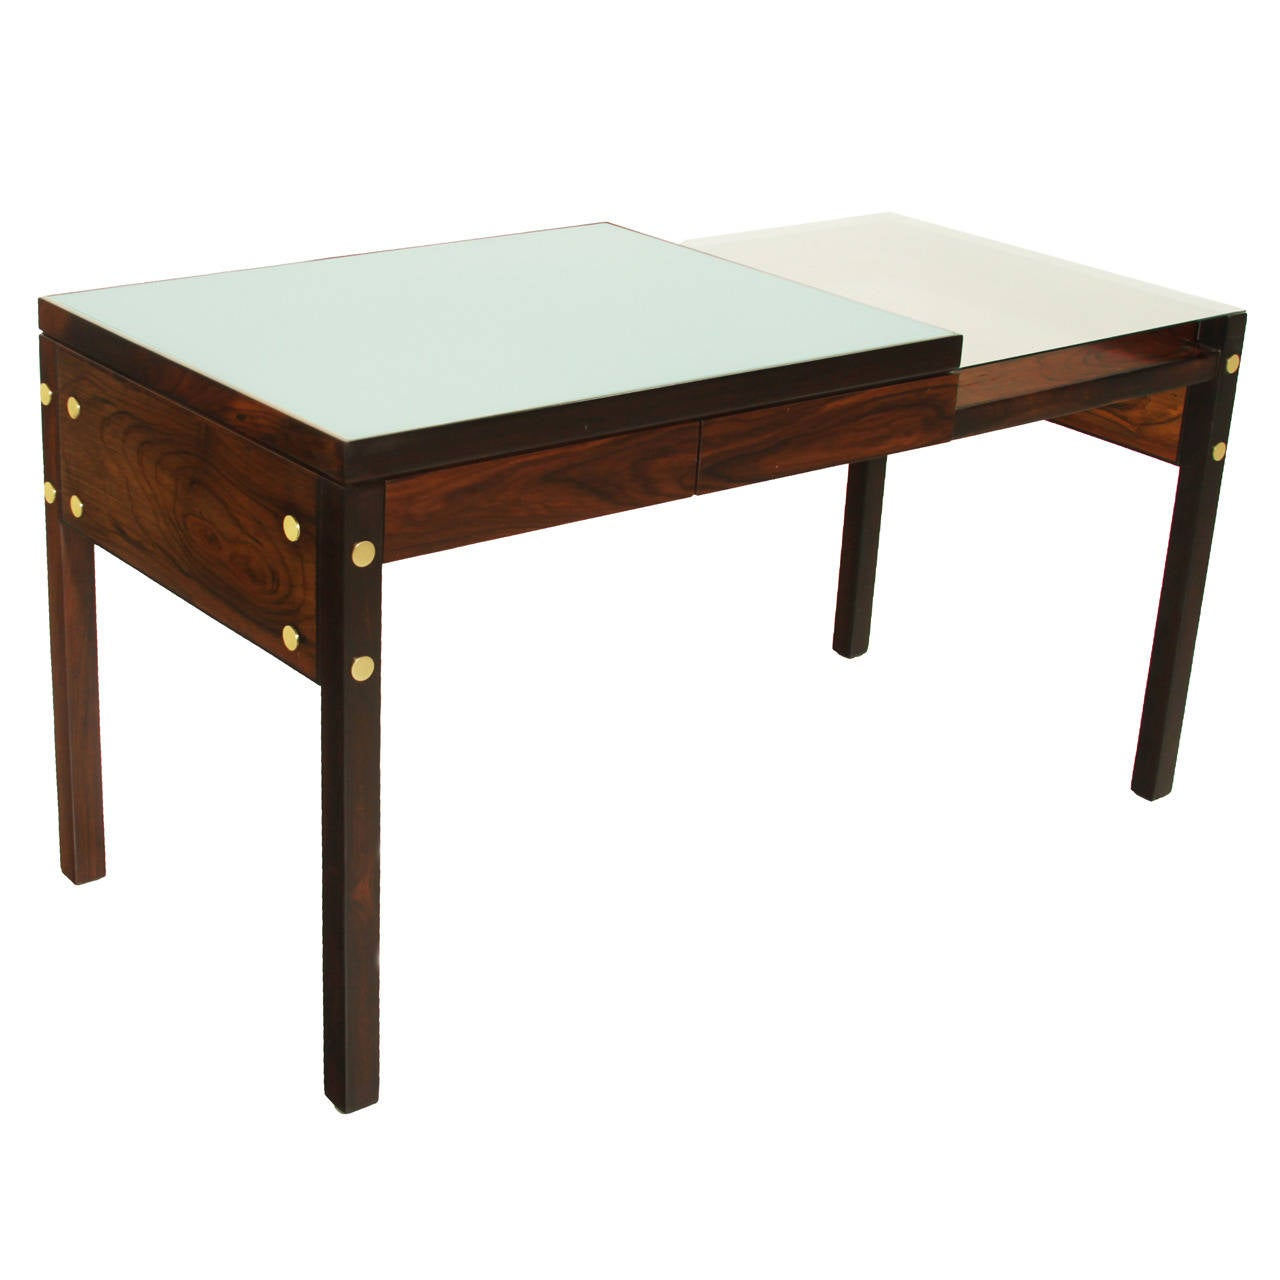 Sergio Rodrigues Brazilian Hardwood Desk with Reverse Painted Glass & Brass